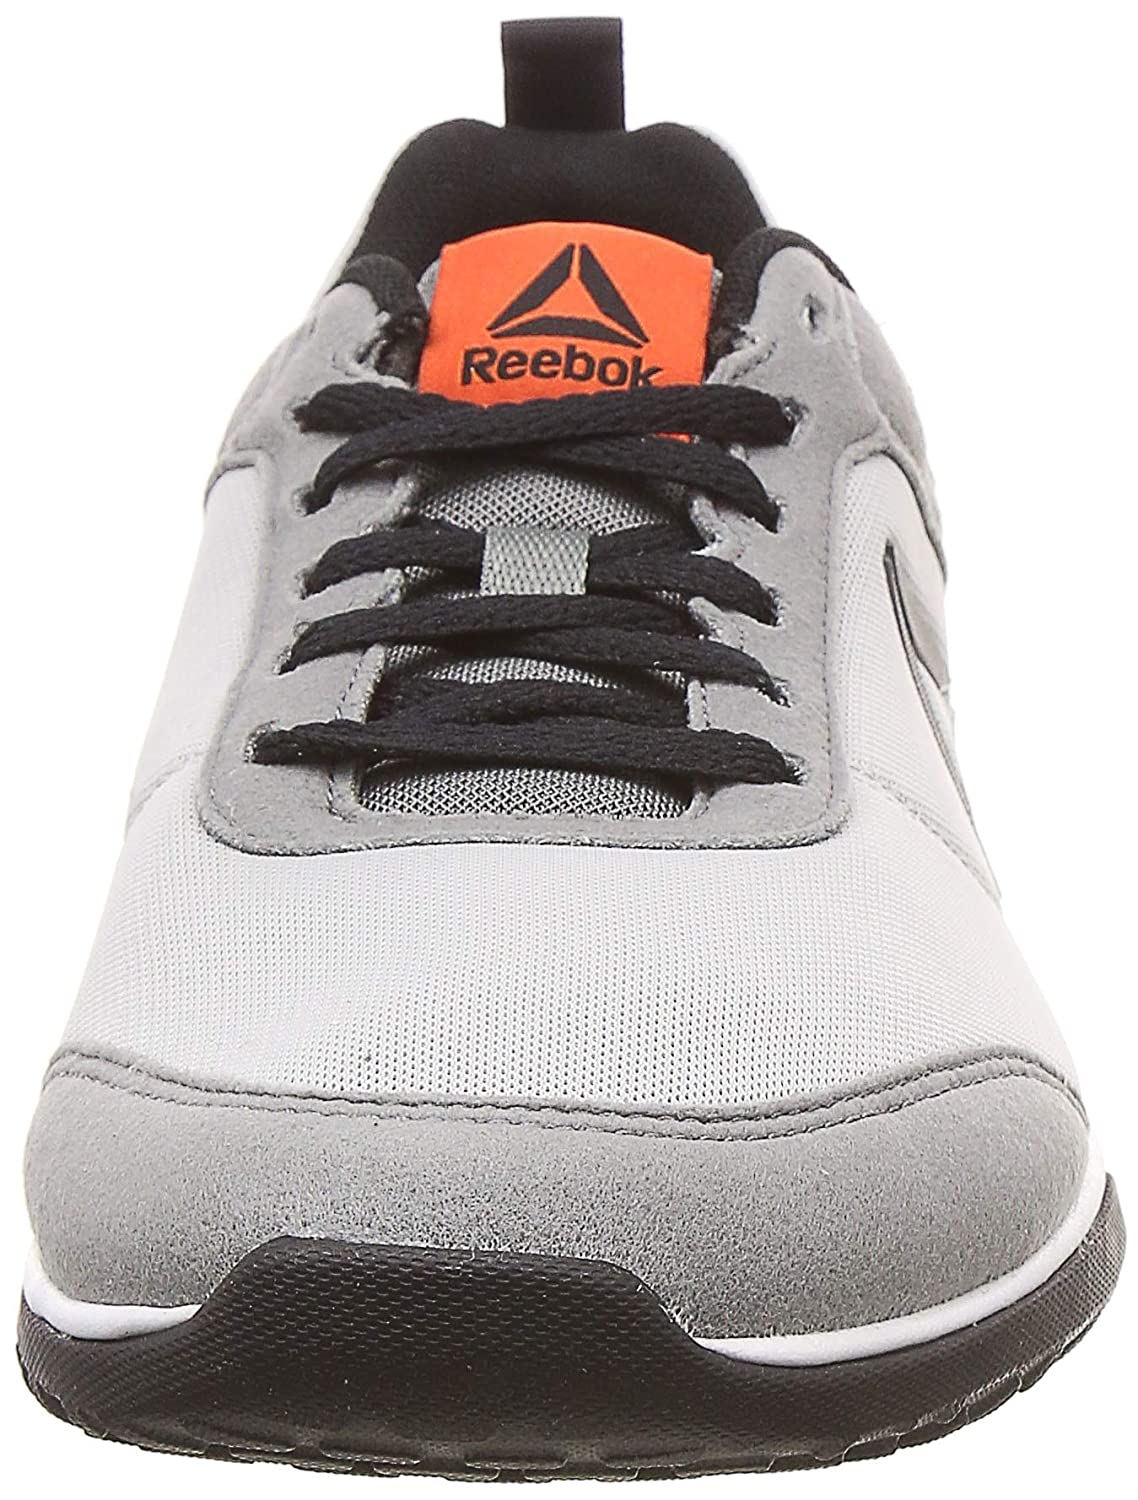 b3ed7840c1c0b4 Reebok Men s CXT Tr Fb Running Shoes  Buy Online at Low Prices in India -  Amazon.in